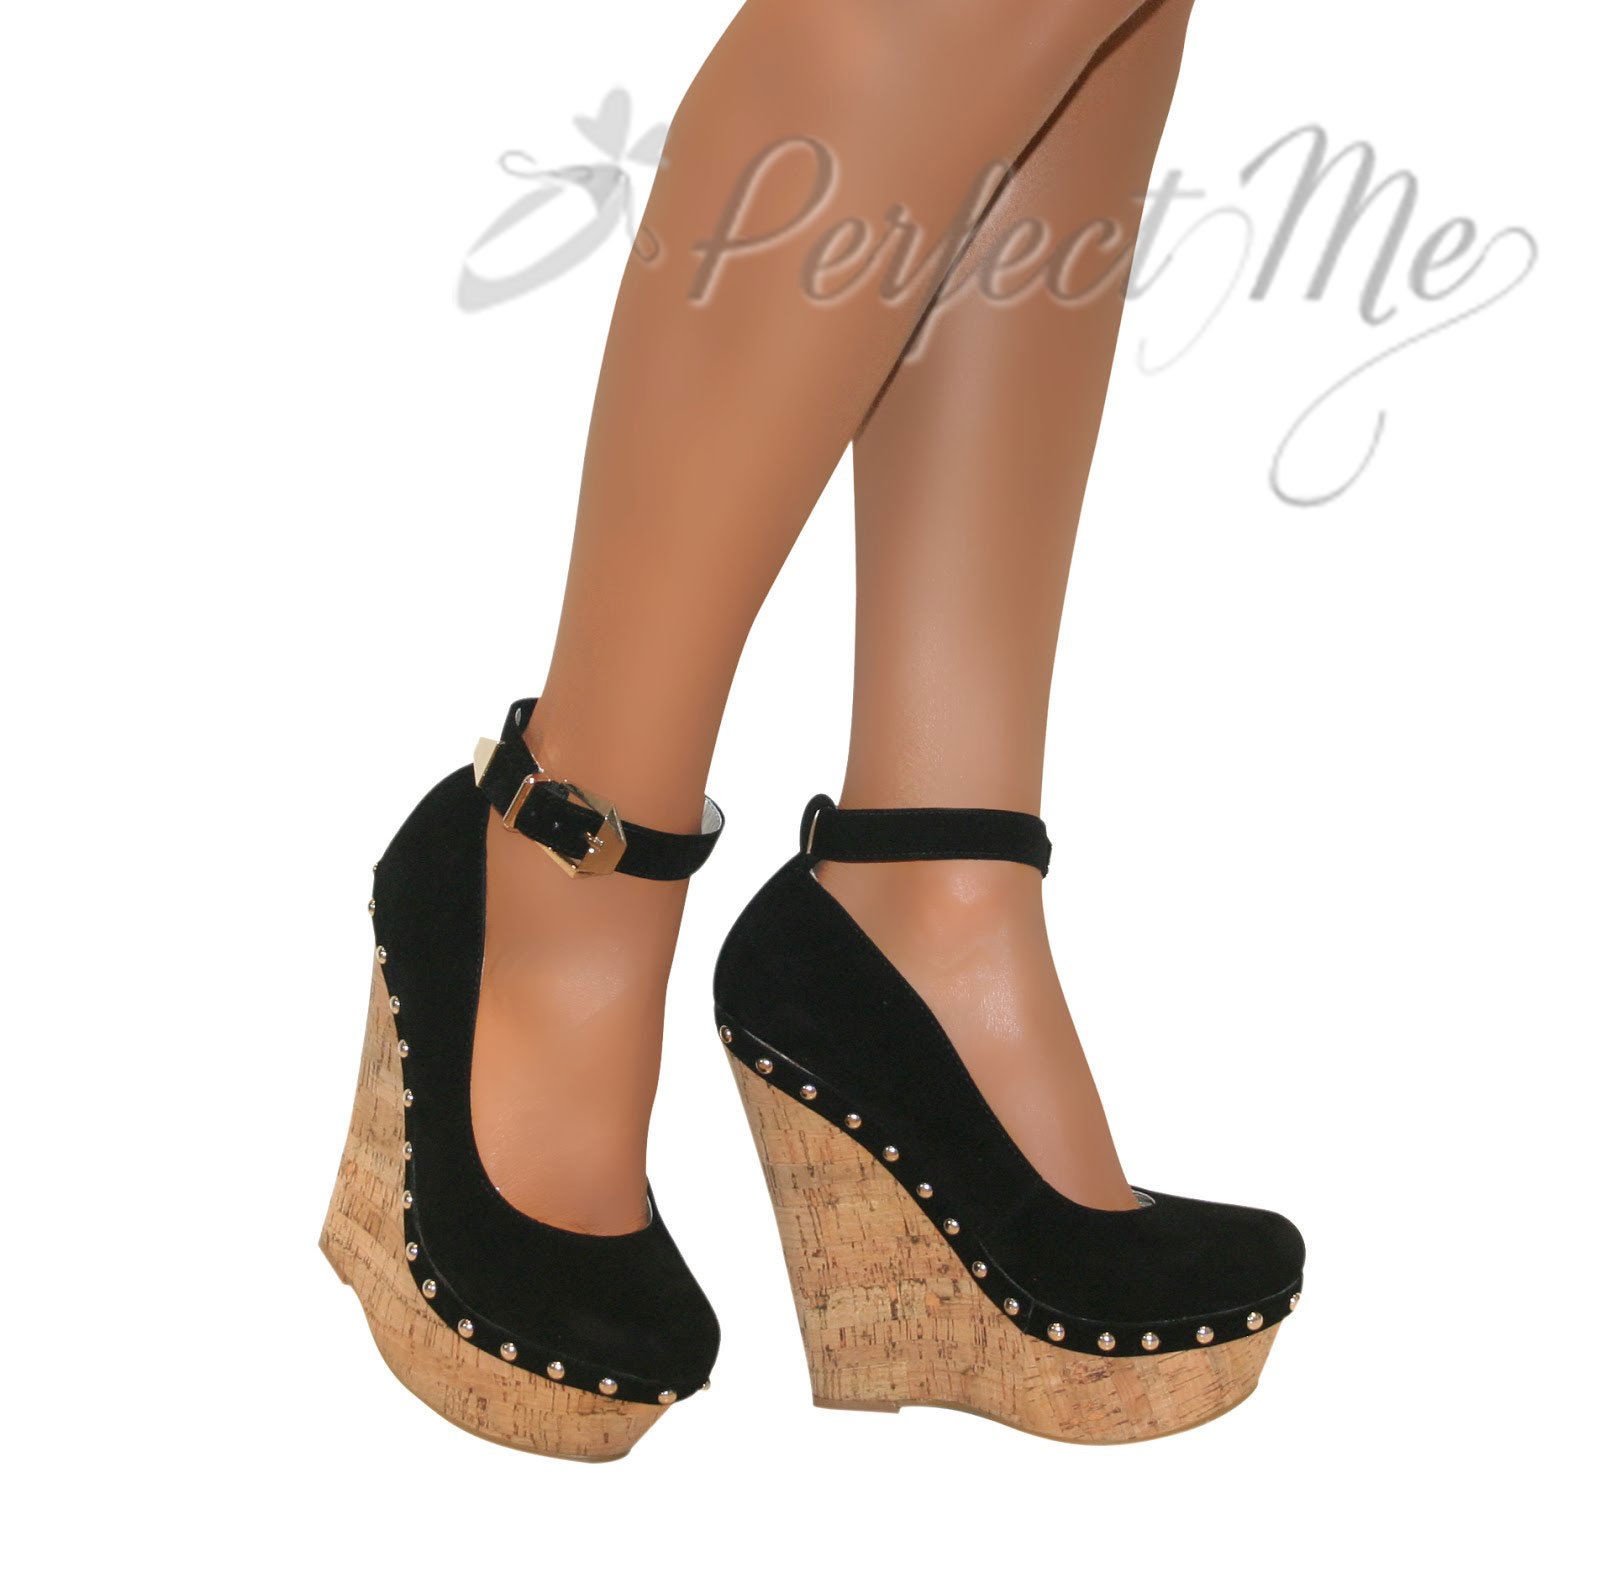 WOMENS-STUDDED-CORK-WEDGE-PLATFORM-ANKLE-STRAPPY-HIGH-HEELS-SHOE-BUCKLE-SIZE